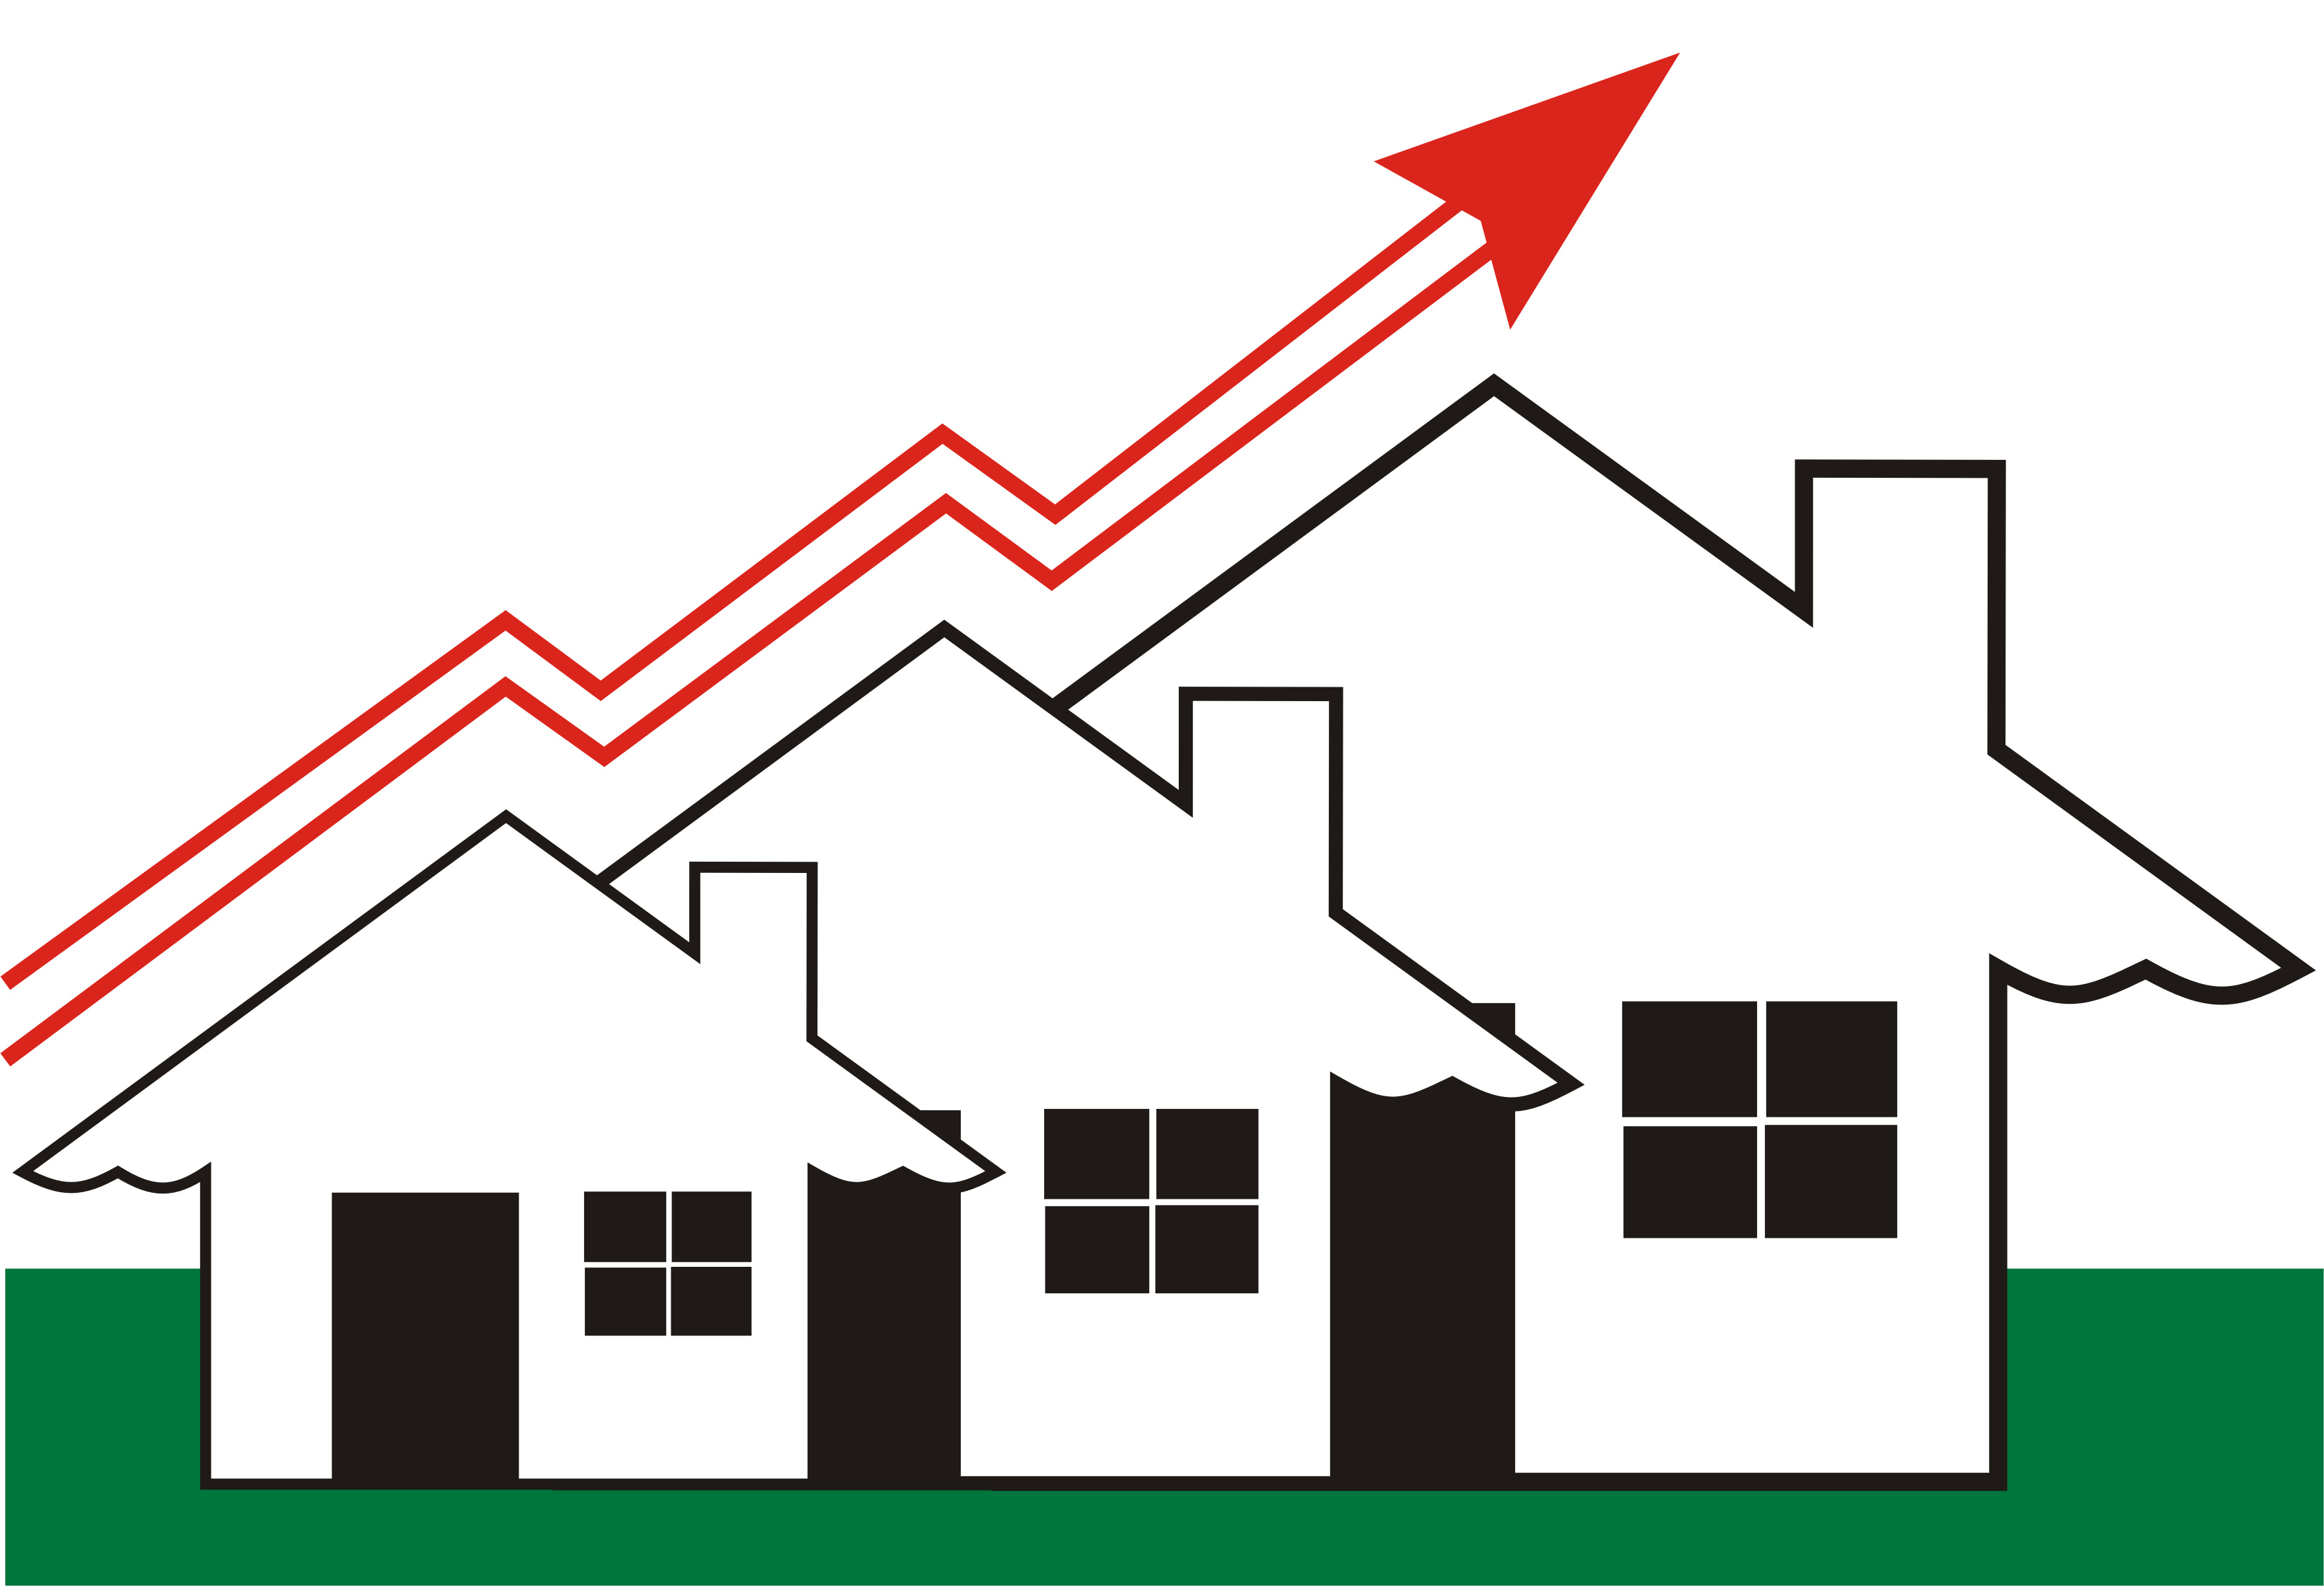 graphic of rising home sales